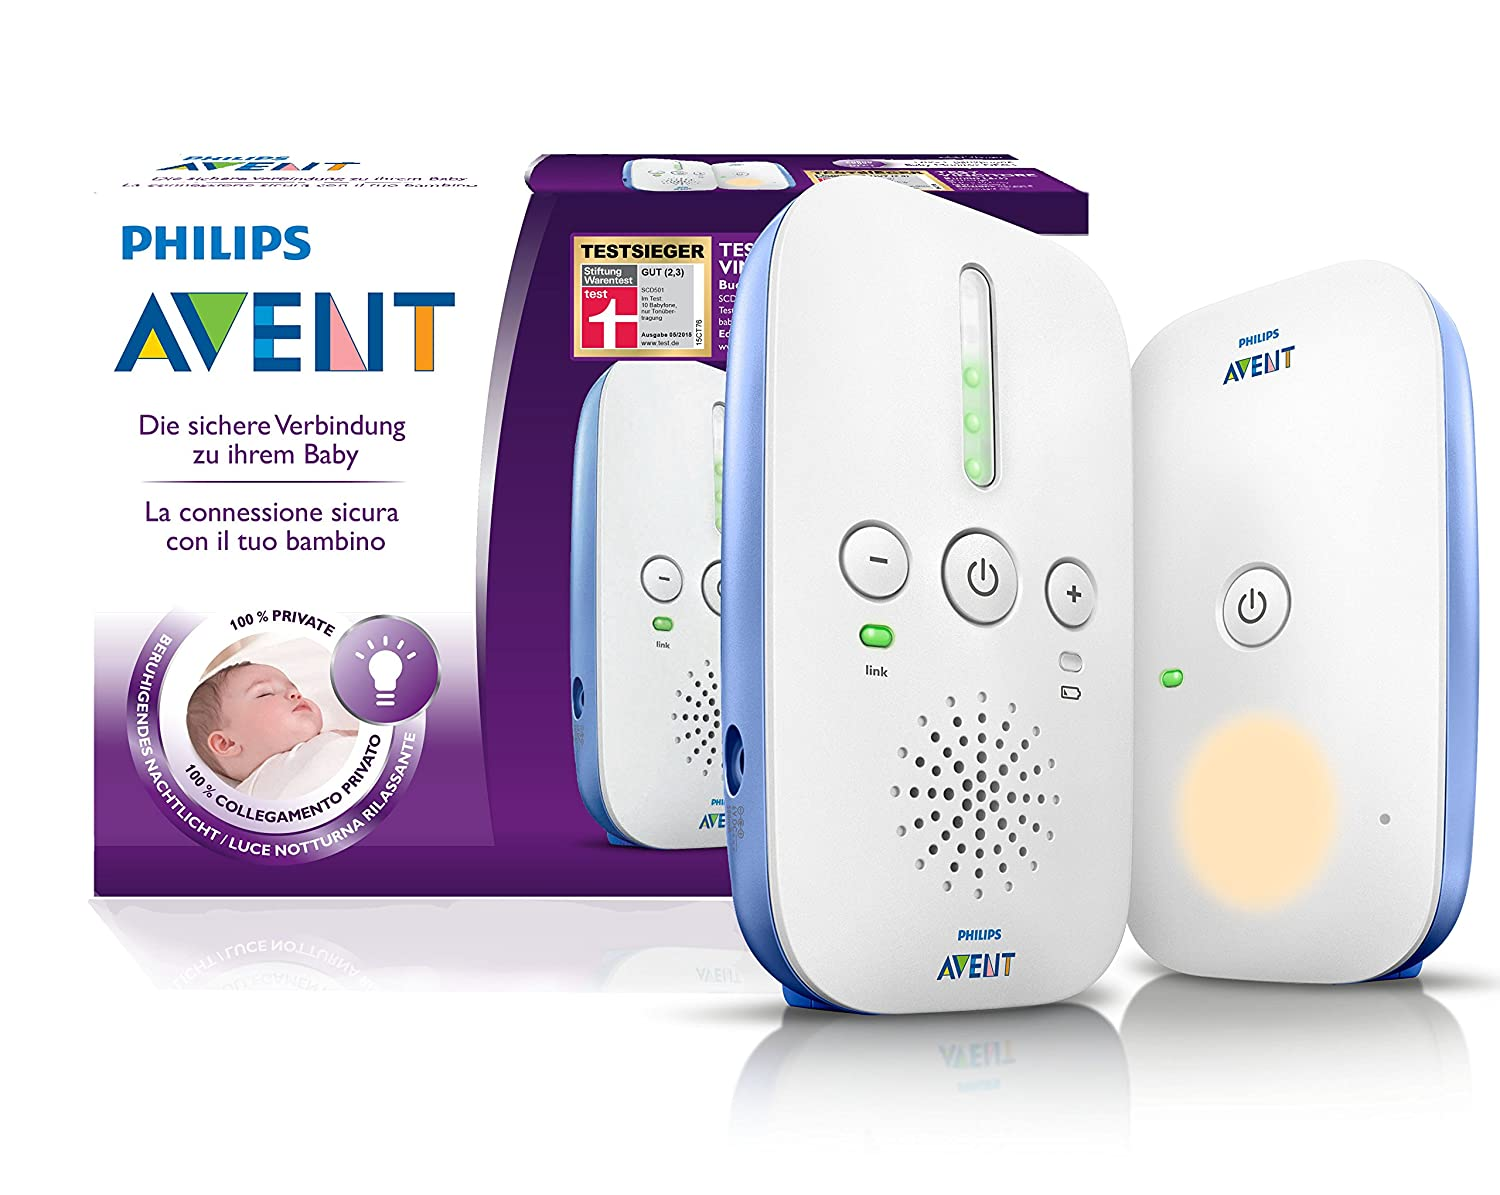 [amazon.de] Philips Avent SCD501/00 DECT Babyphone um 34,99€